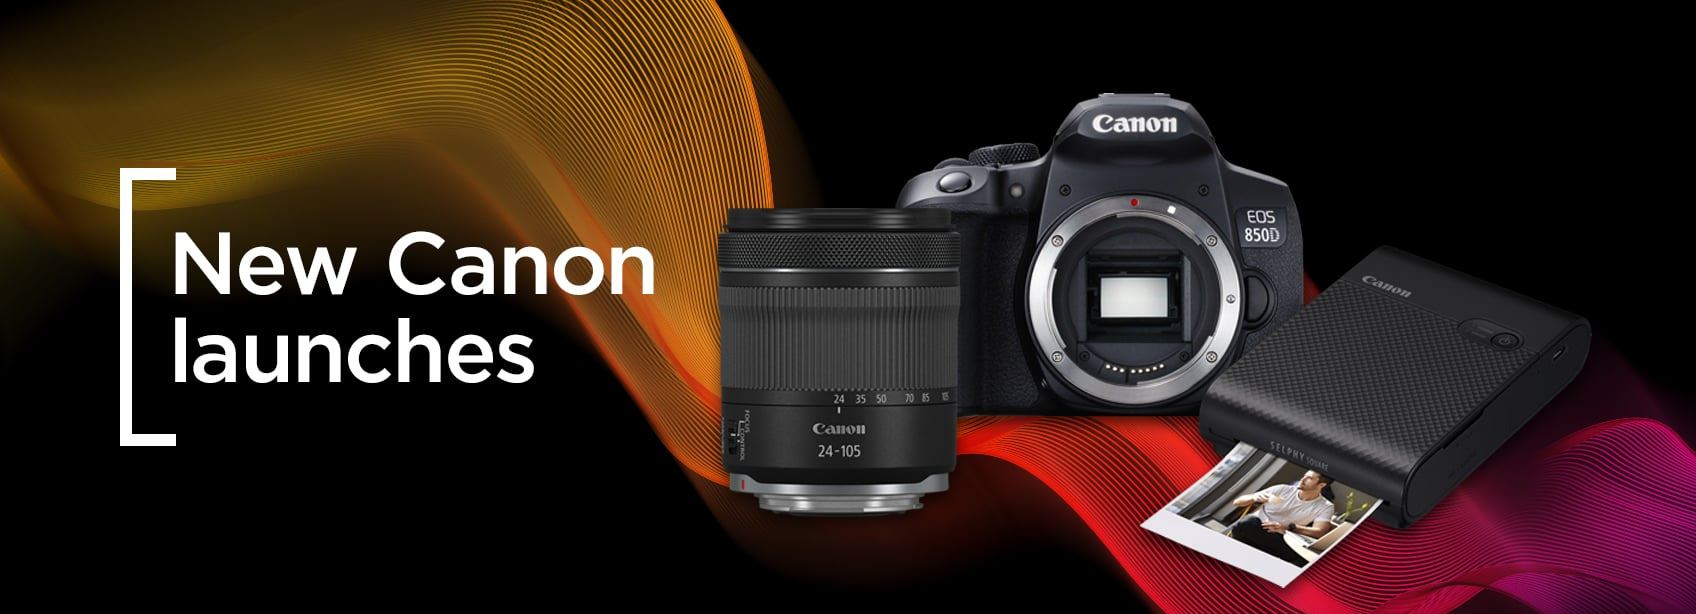 Wex-Canon-launches-H-120220.jpg